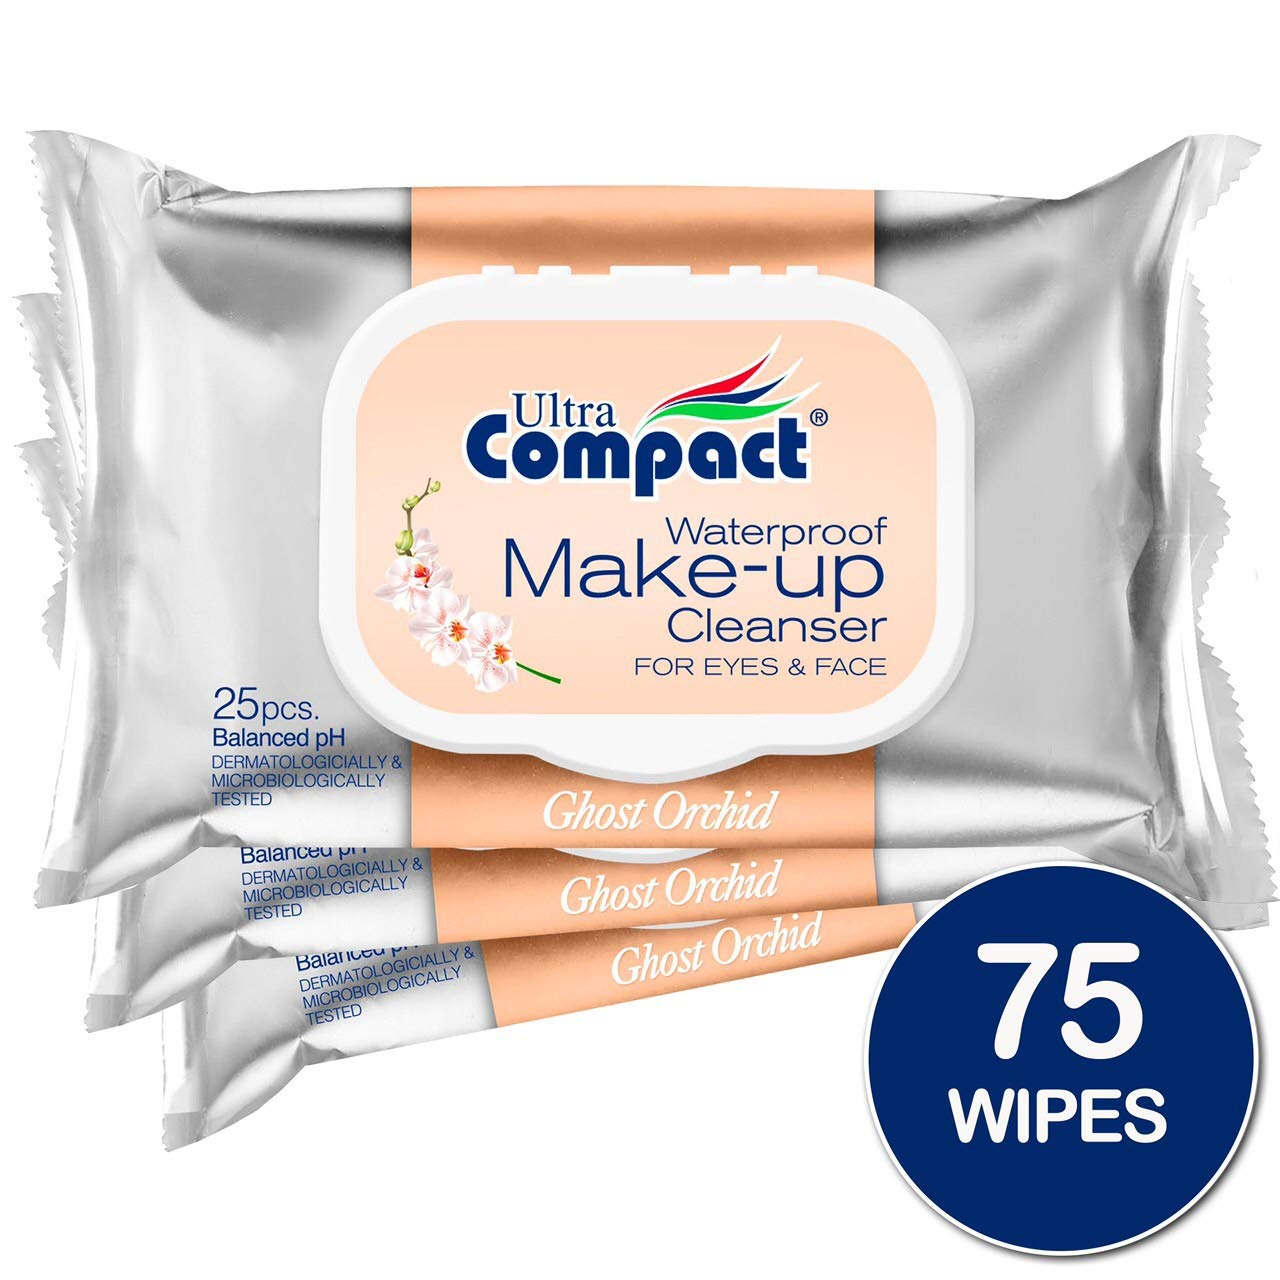 Ultra Compact Makeup Remover Wipes - No Harsh Chemicals Eye Makeup Remover - Dermatologically & Microbiologically Tested Face Wipes - Ghost Orchid Or Fragrance Makeup Wipes -3 Packs of 25 Wipes